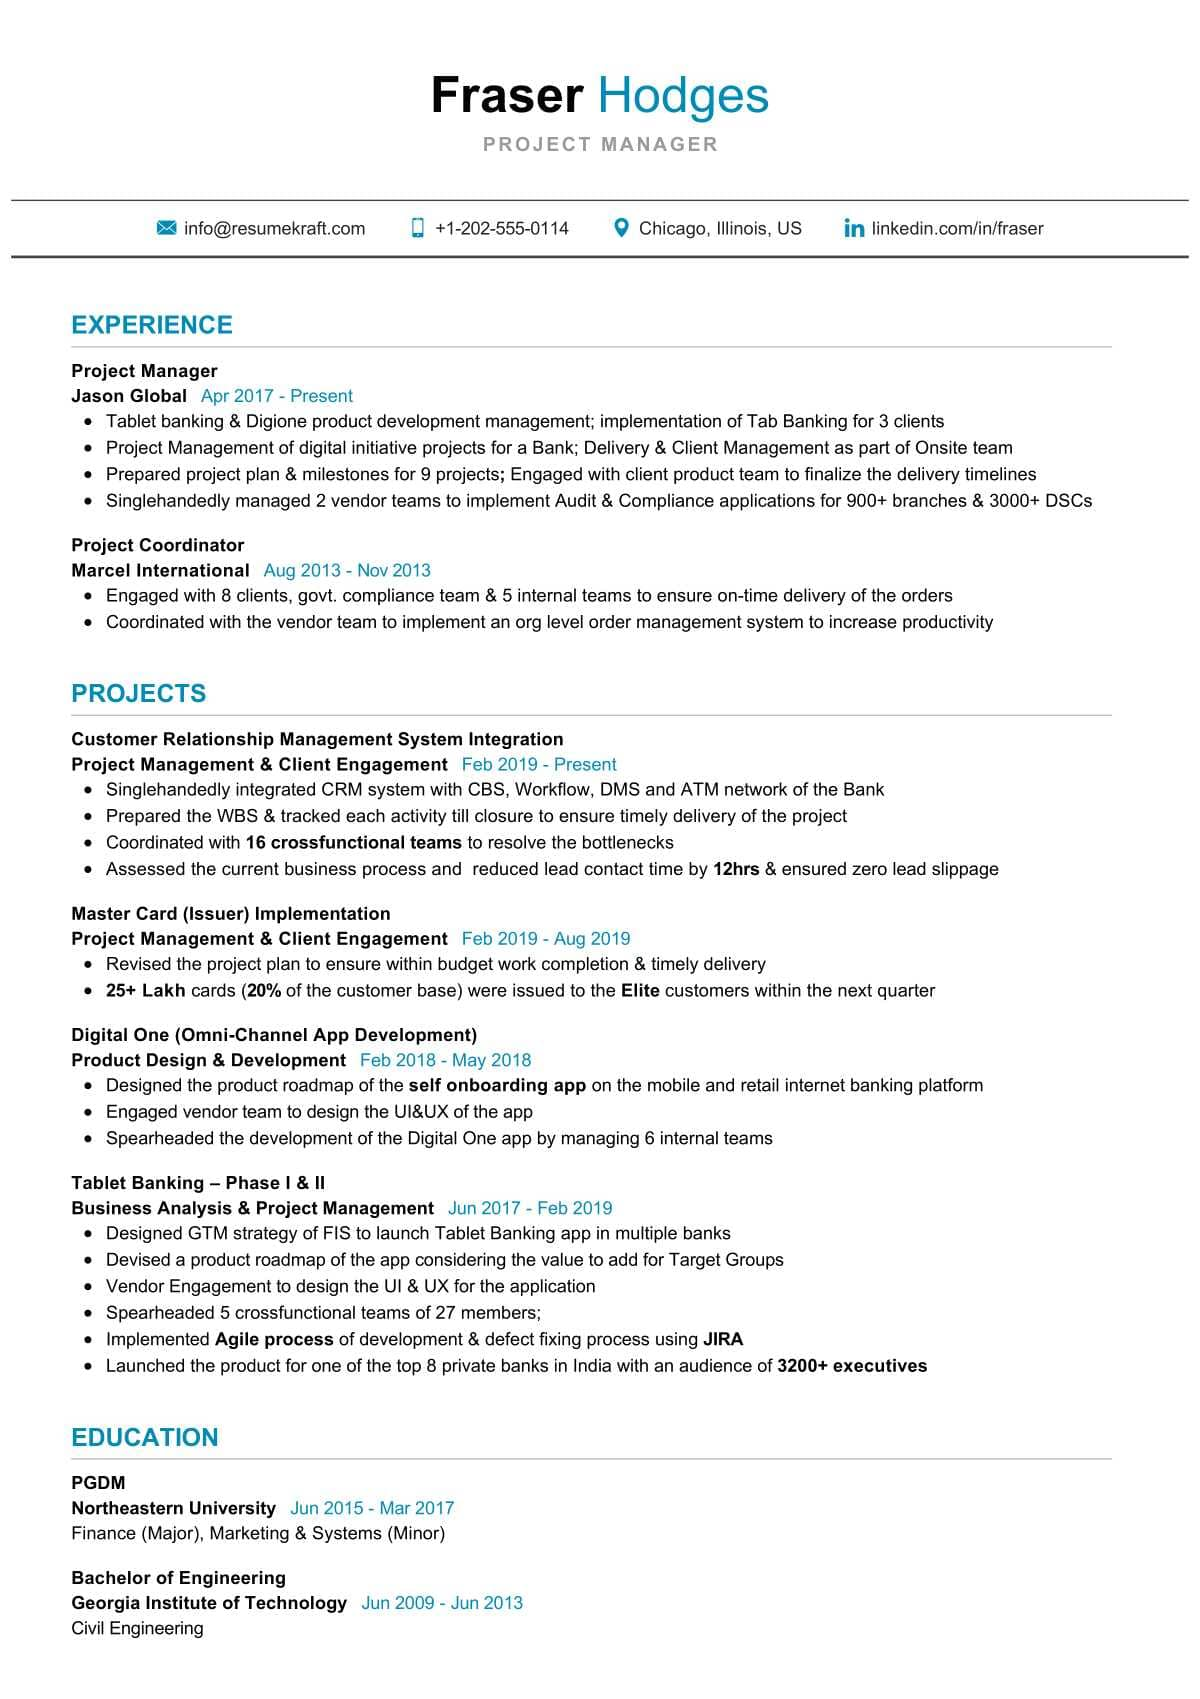 sr project manager resume example resumekraft examples leed ap builder intern Resume Project Manager Resume Examples 2018